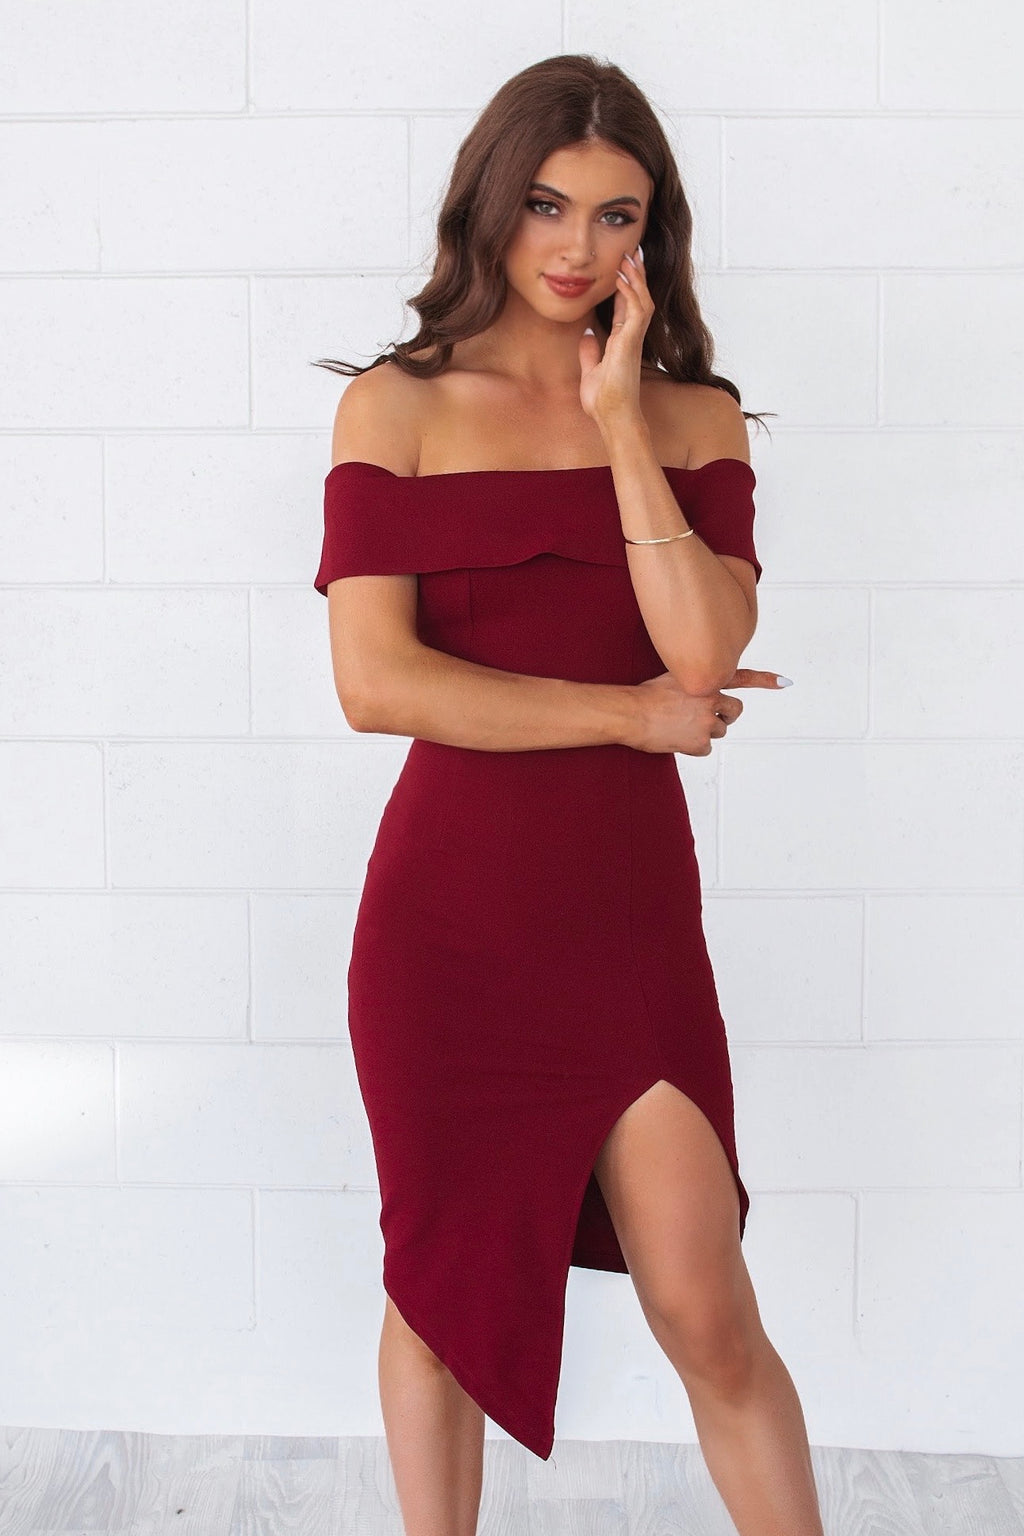 Femme Fatale Dress - Wine - Runway Goddess